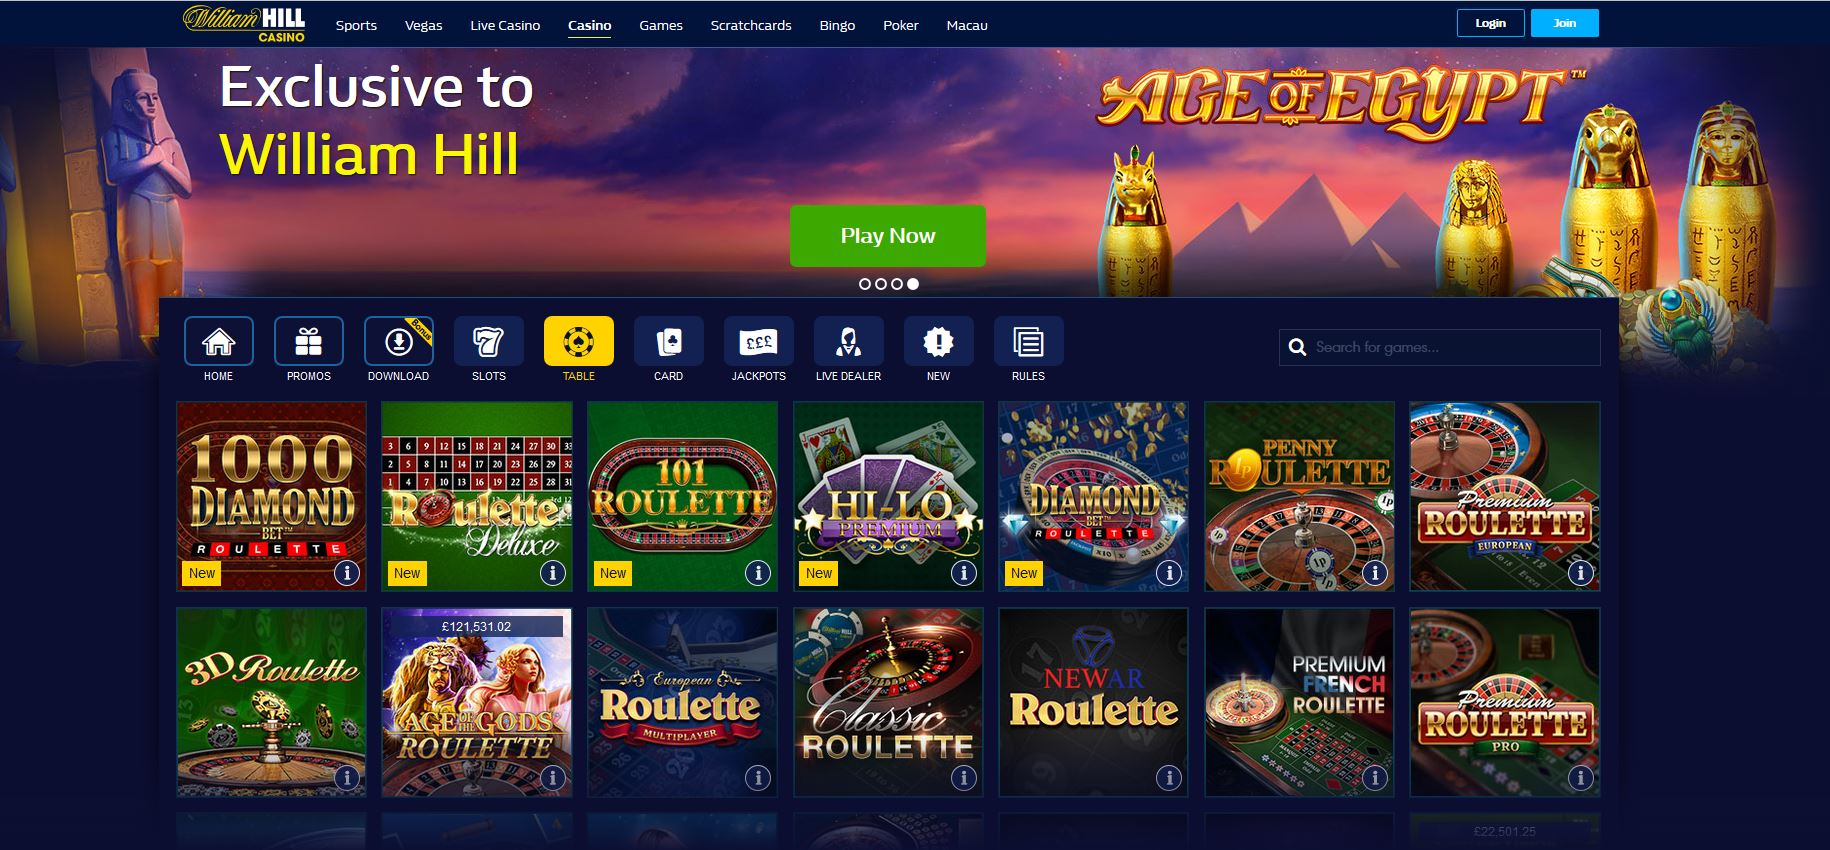 Unibet online casino William Hill-889844